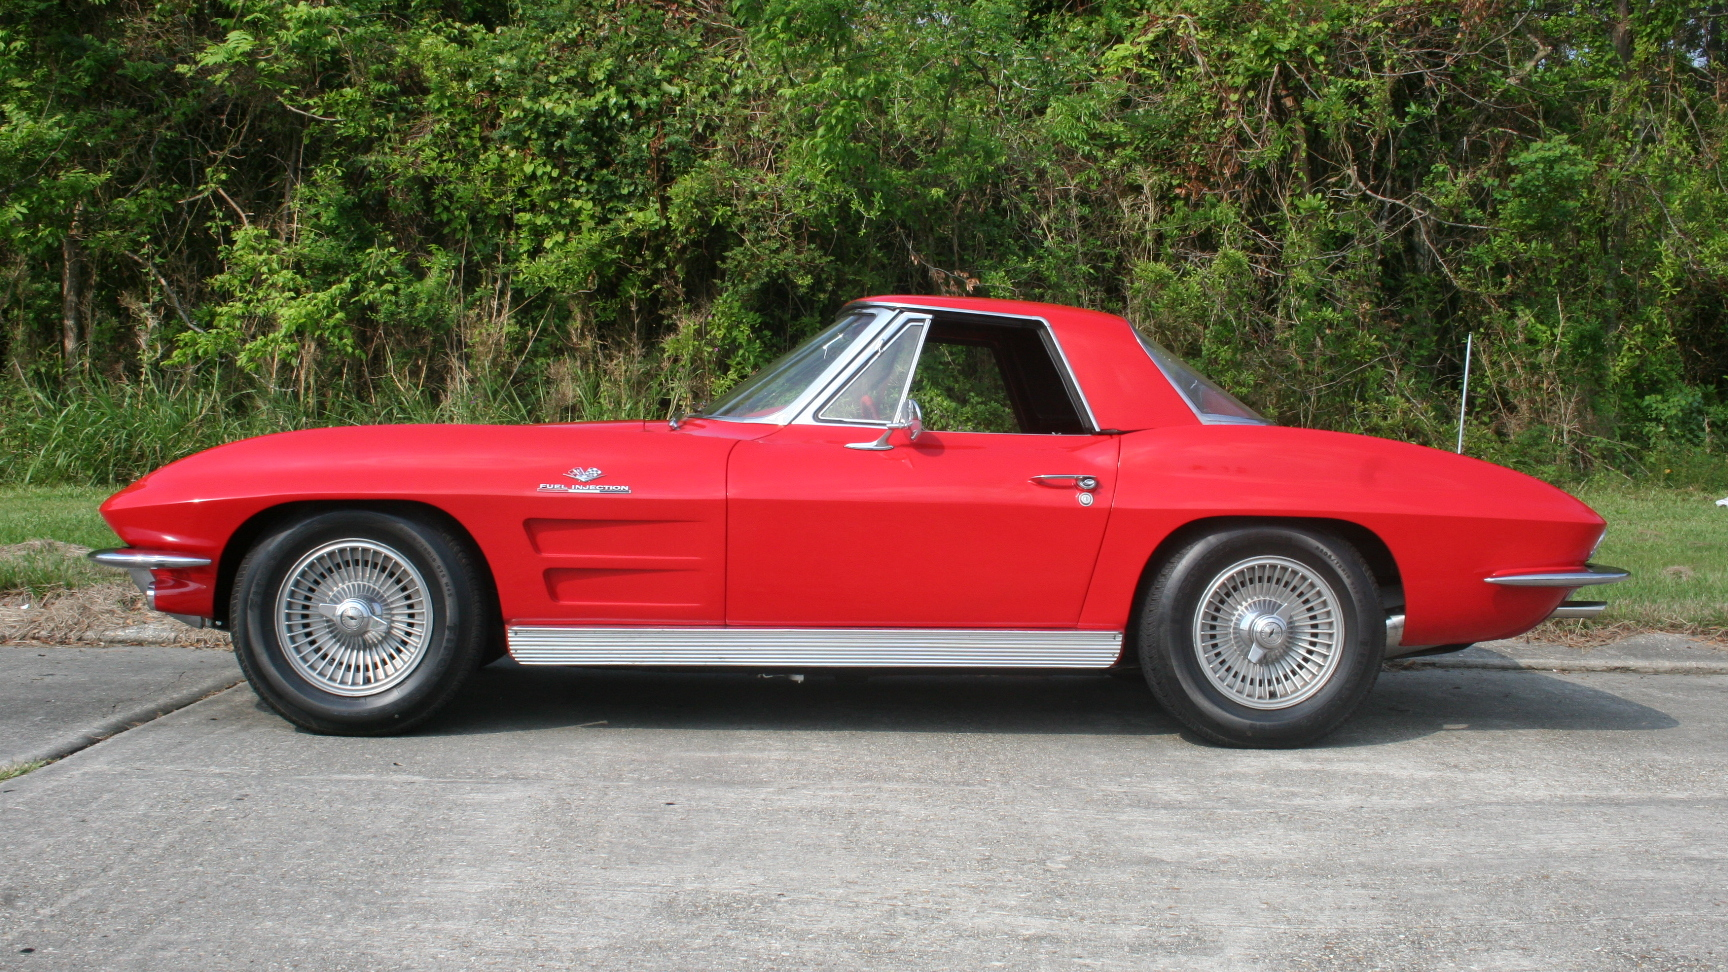 1963 Chevrolet Corvette Pilot Car. Photo via Vicari.